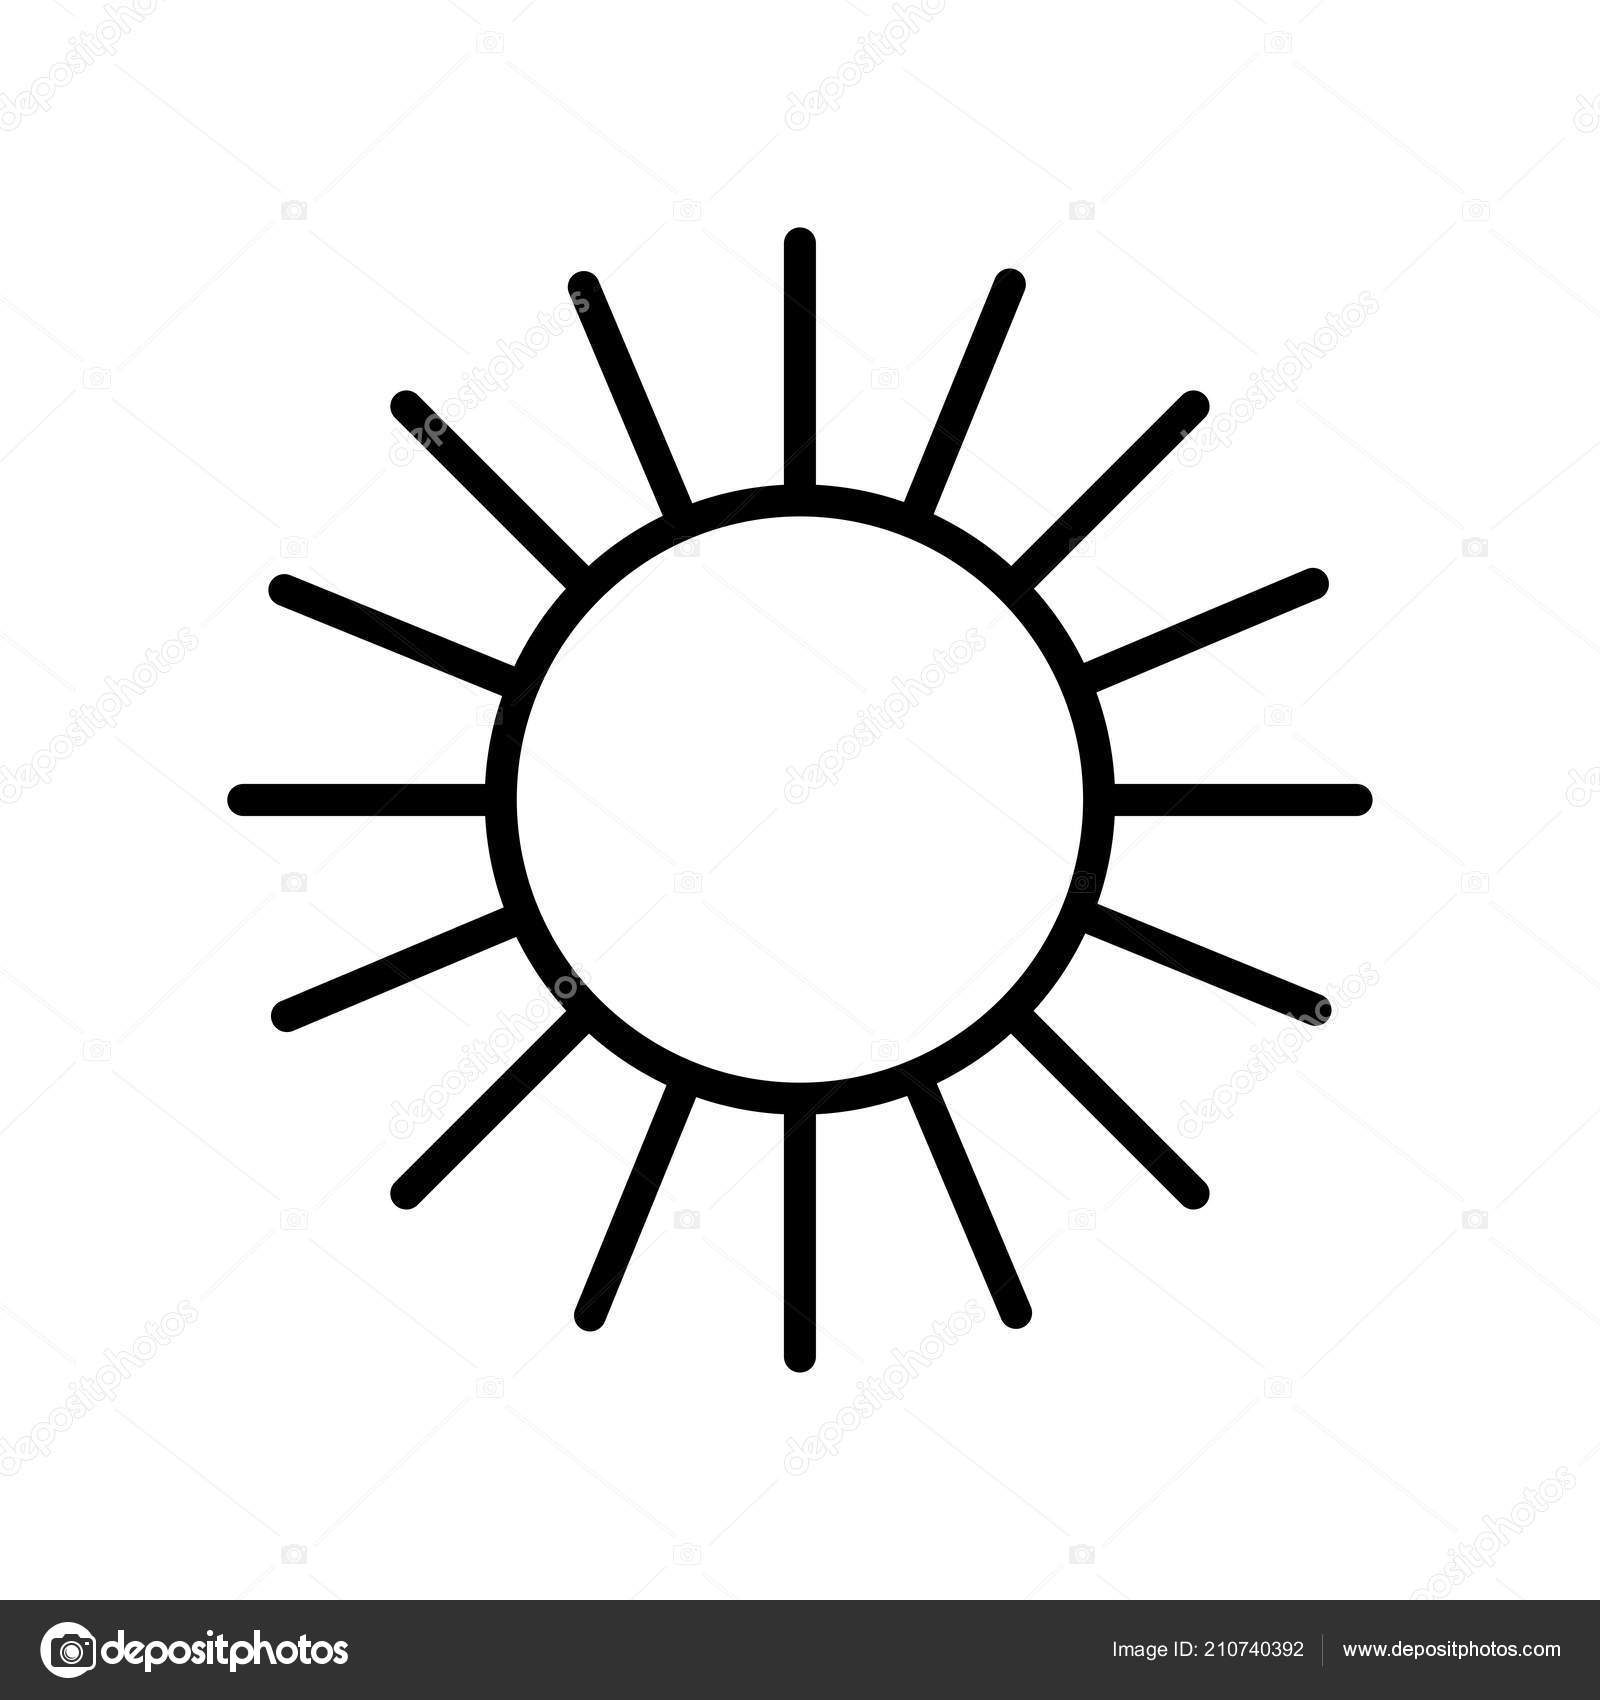 Sun icon vector sign and symbol isolated on white background